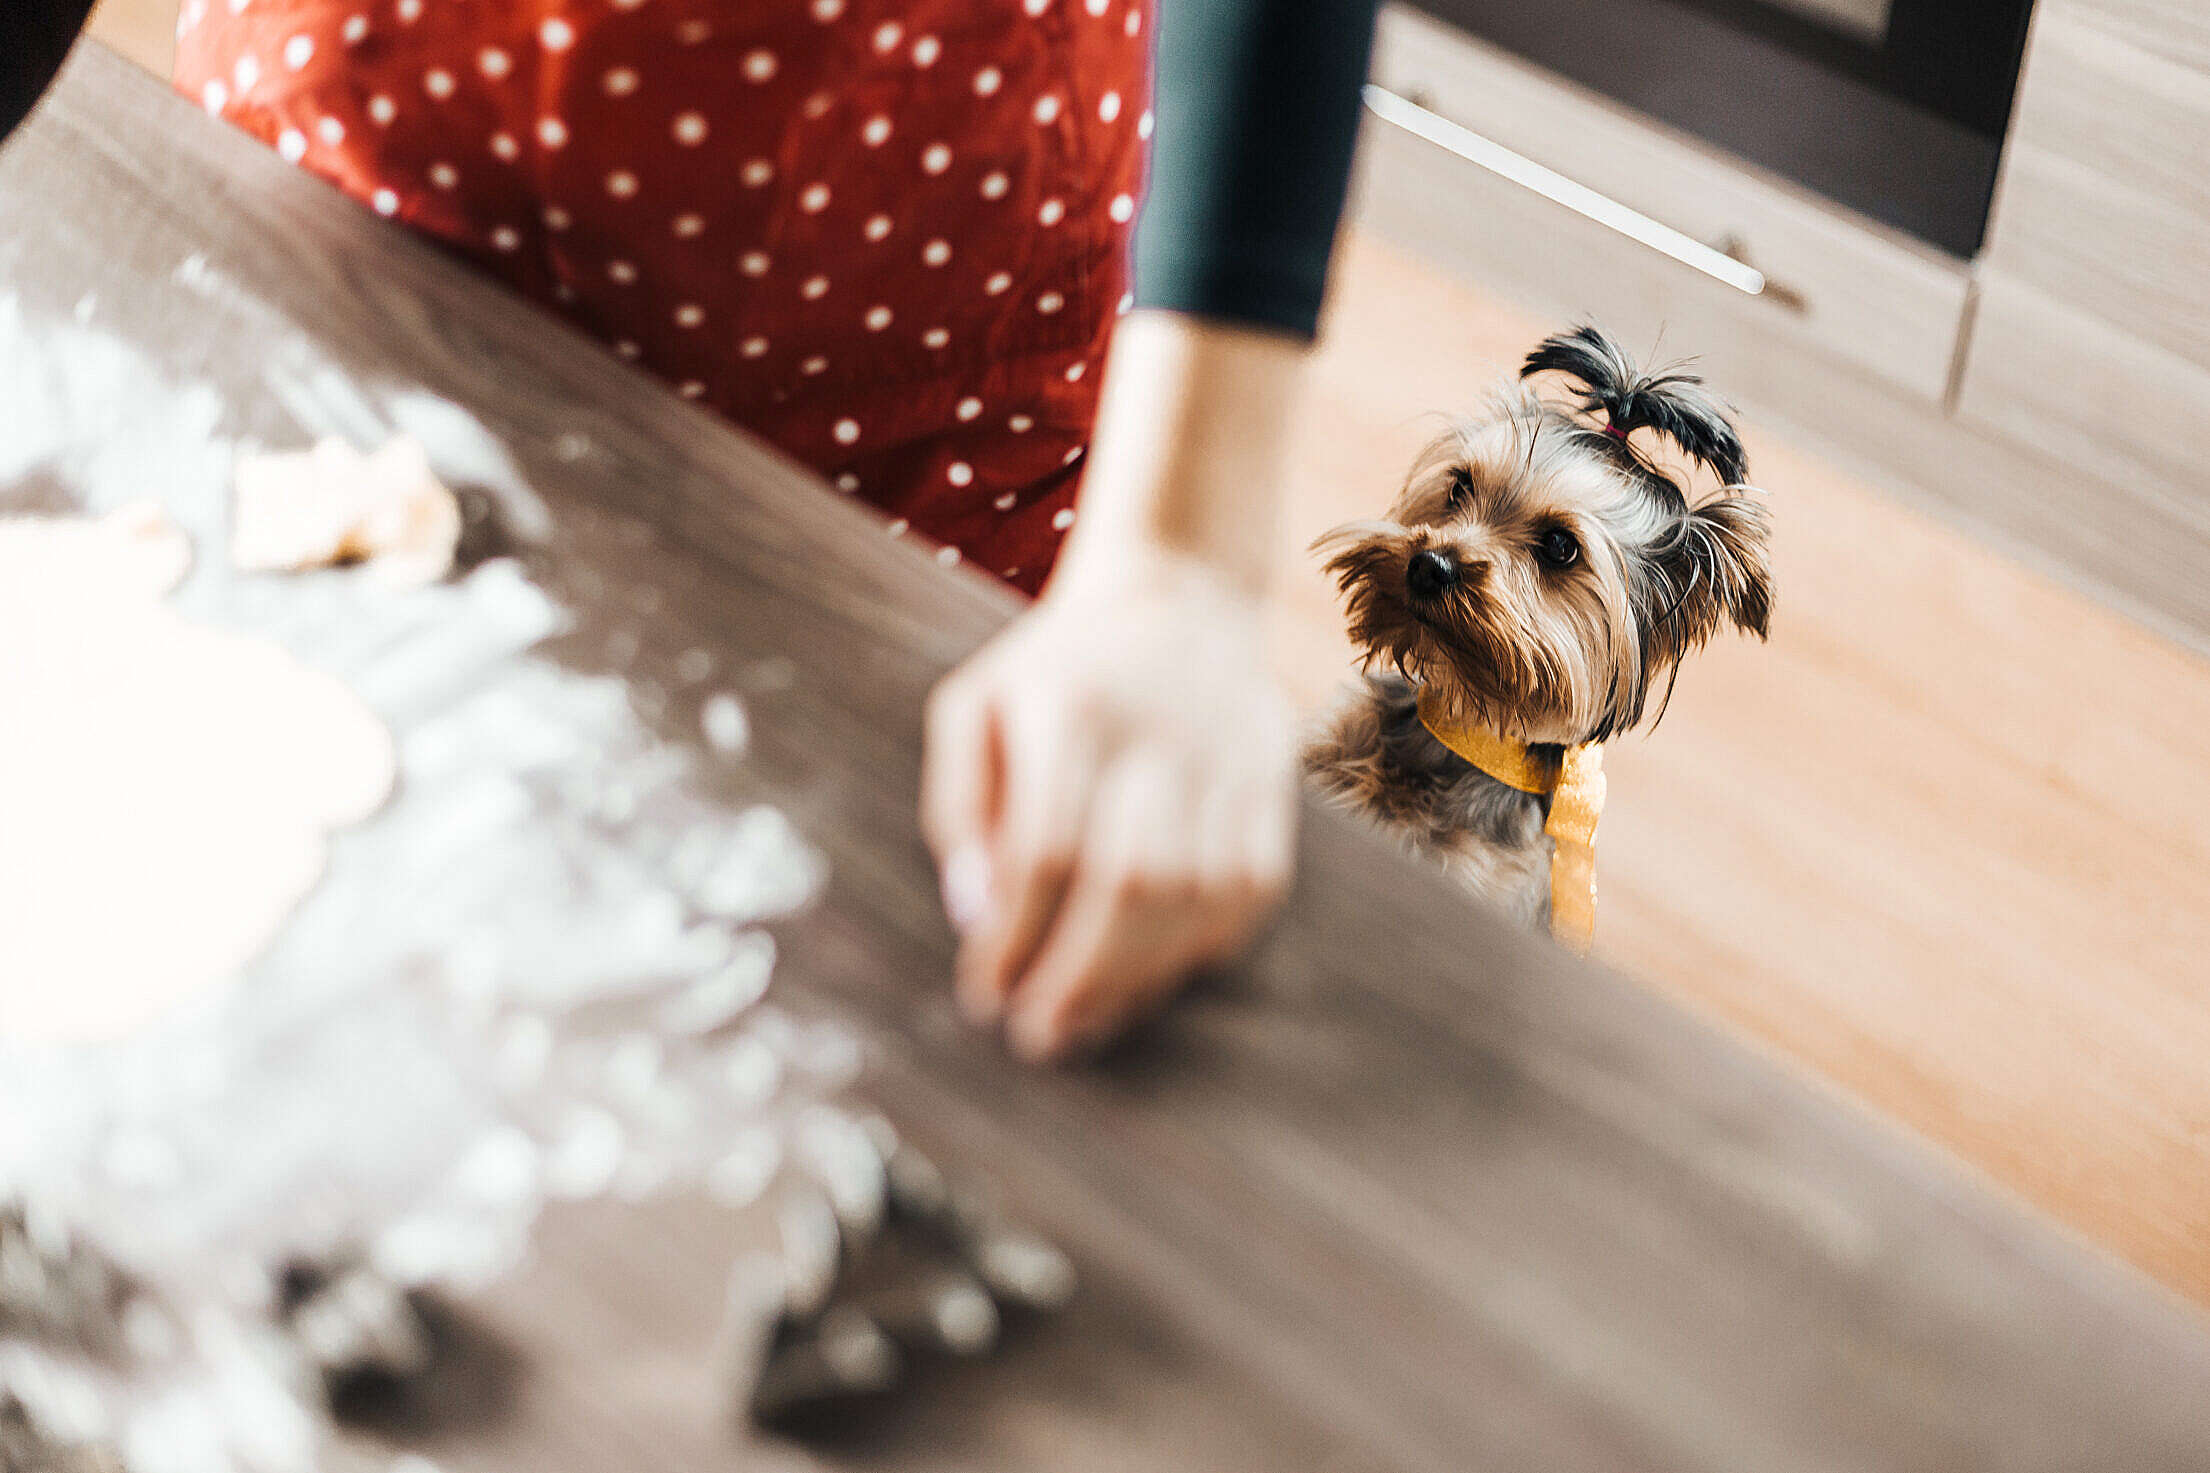 Download Christmas Baking: Our Little Helper Free Stock Photo